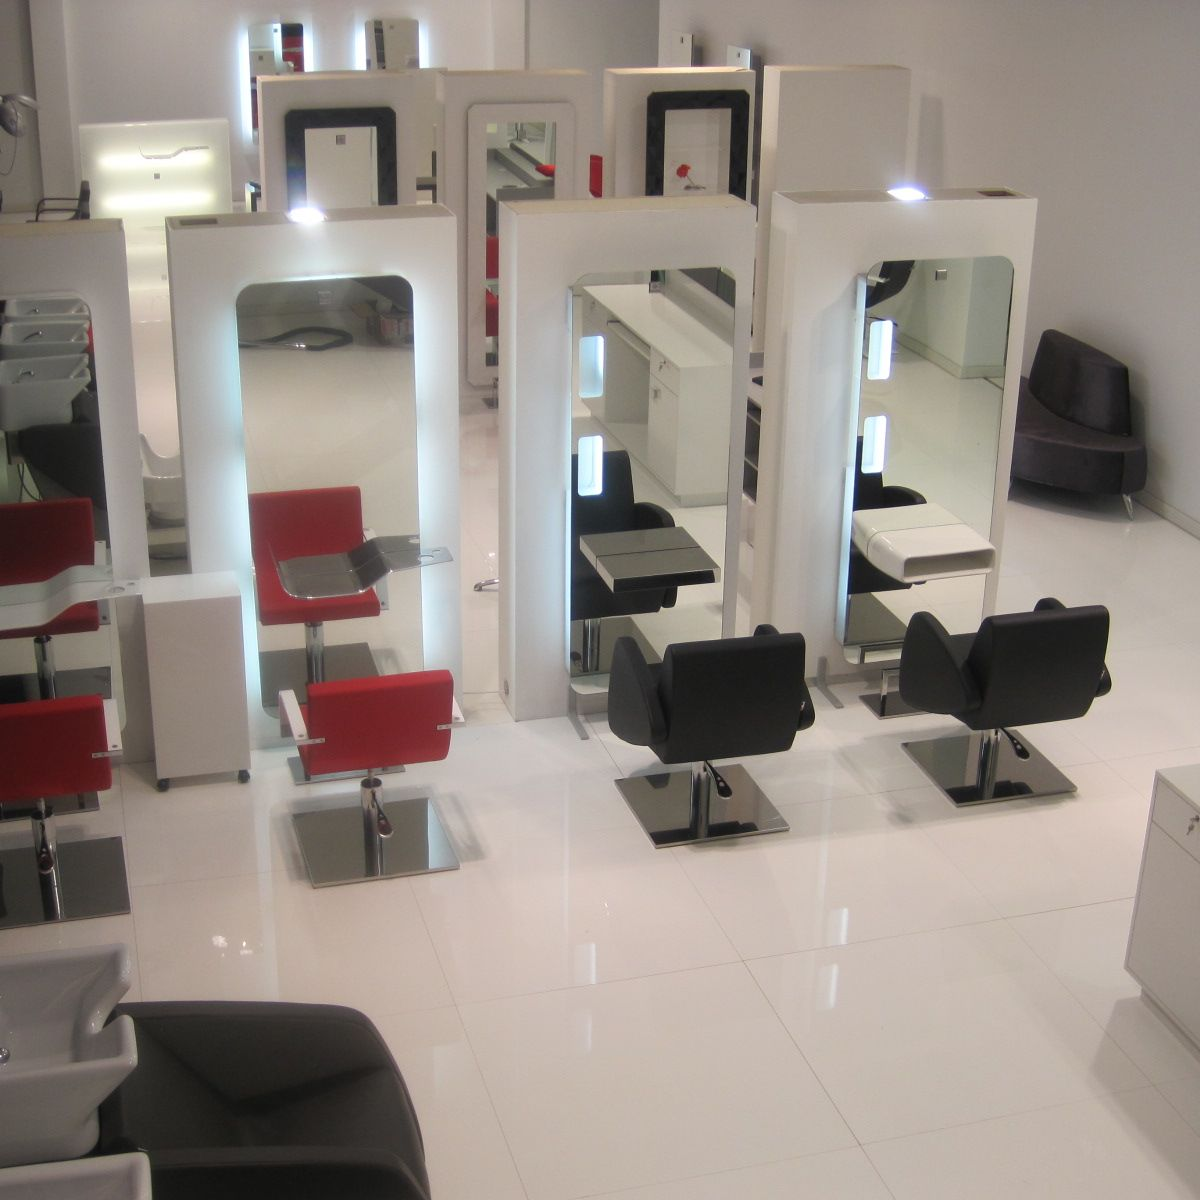 Nelson mobilier salon furniture salon design hair for Mobilier salon professionnel